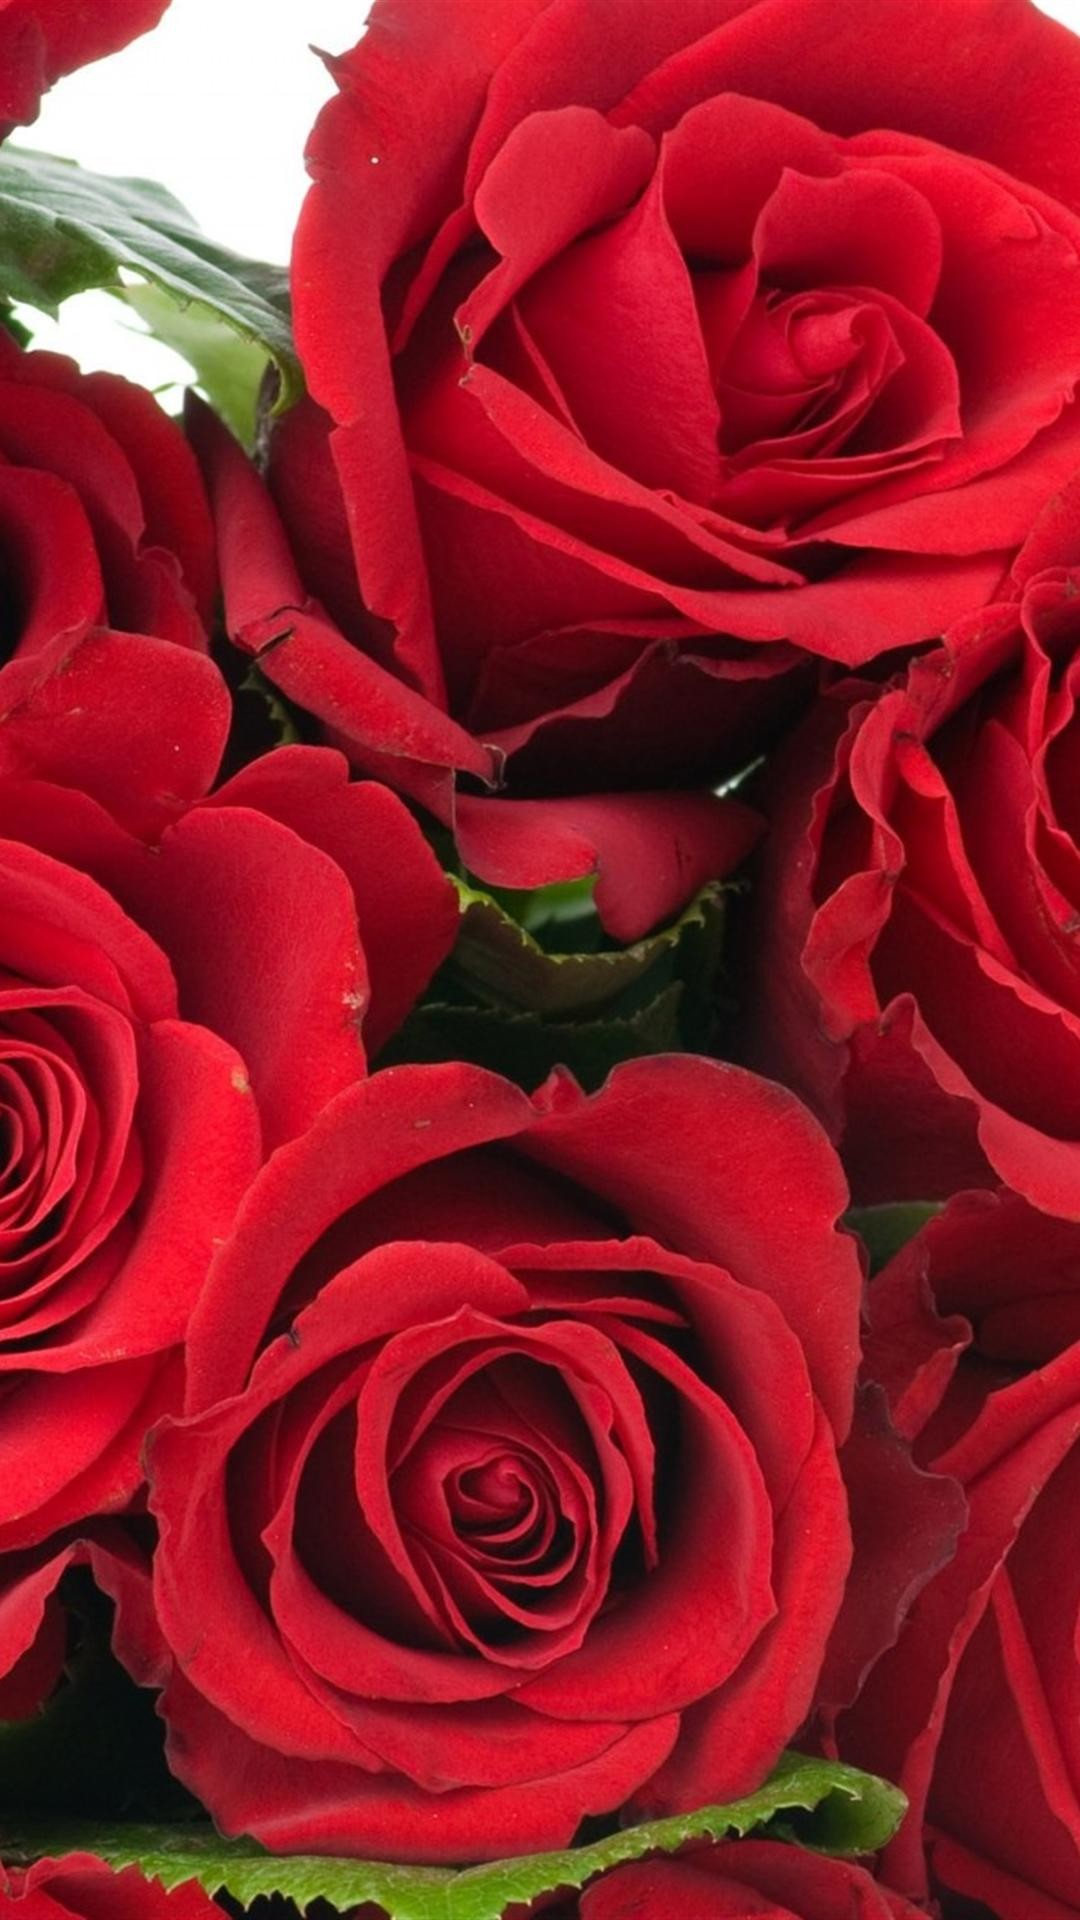 roses flowers bouquet bright red beauty iphone 6 plus wallpapers